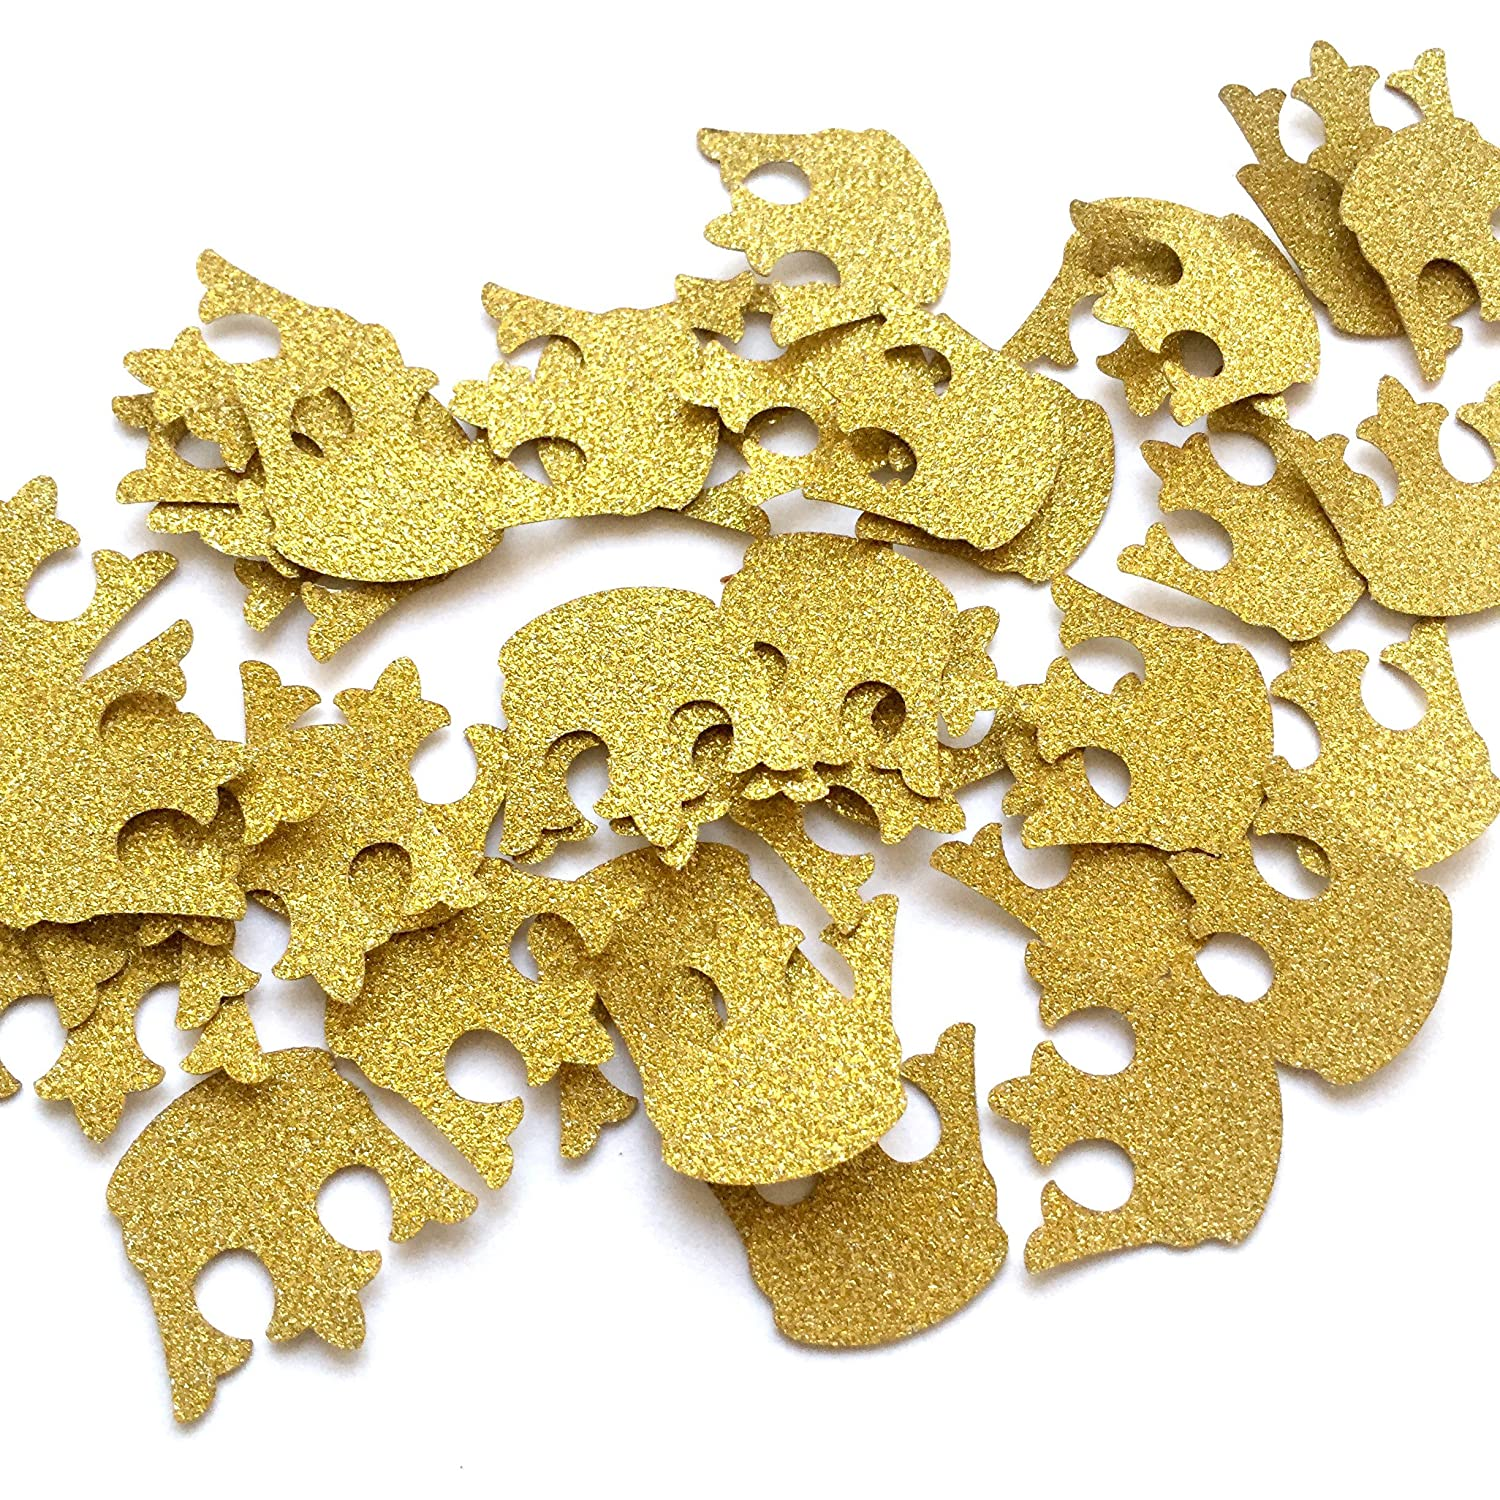 Amazon Glitter Gold Royal Prince King Crown Confetti 2